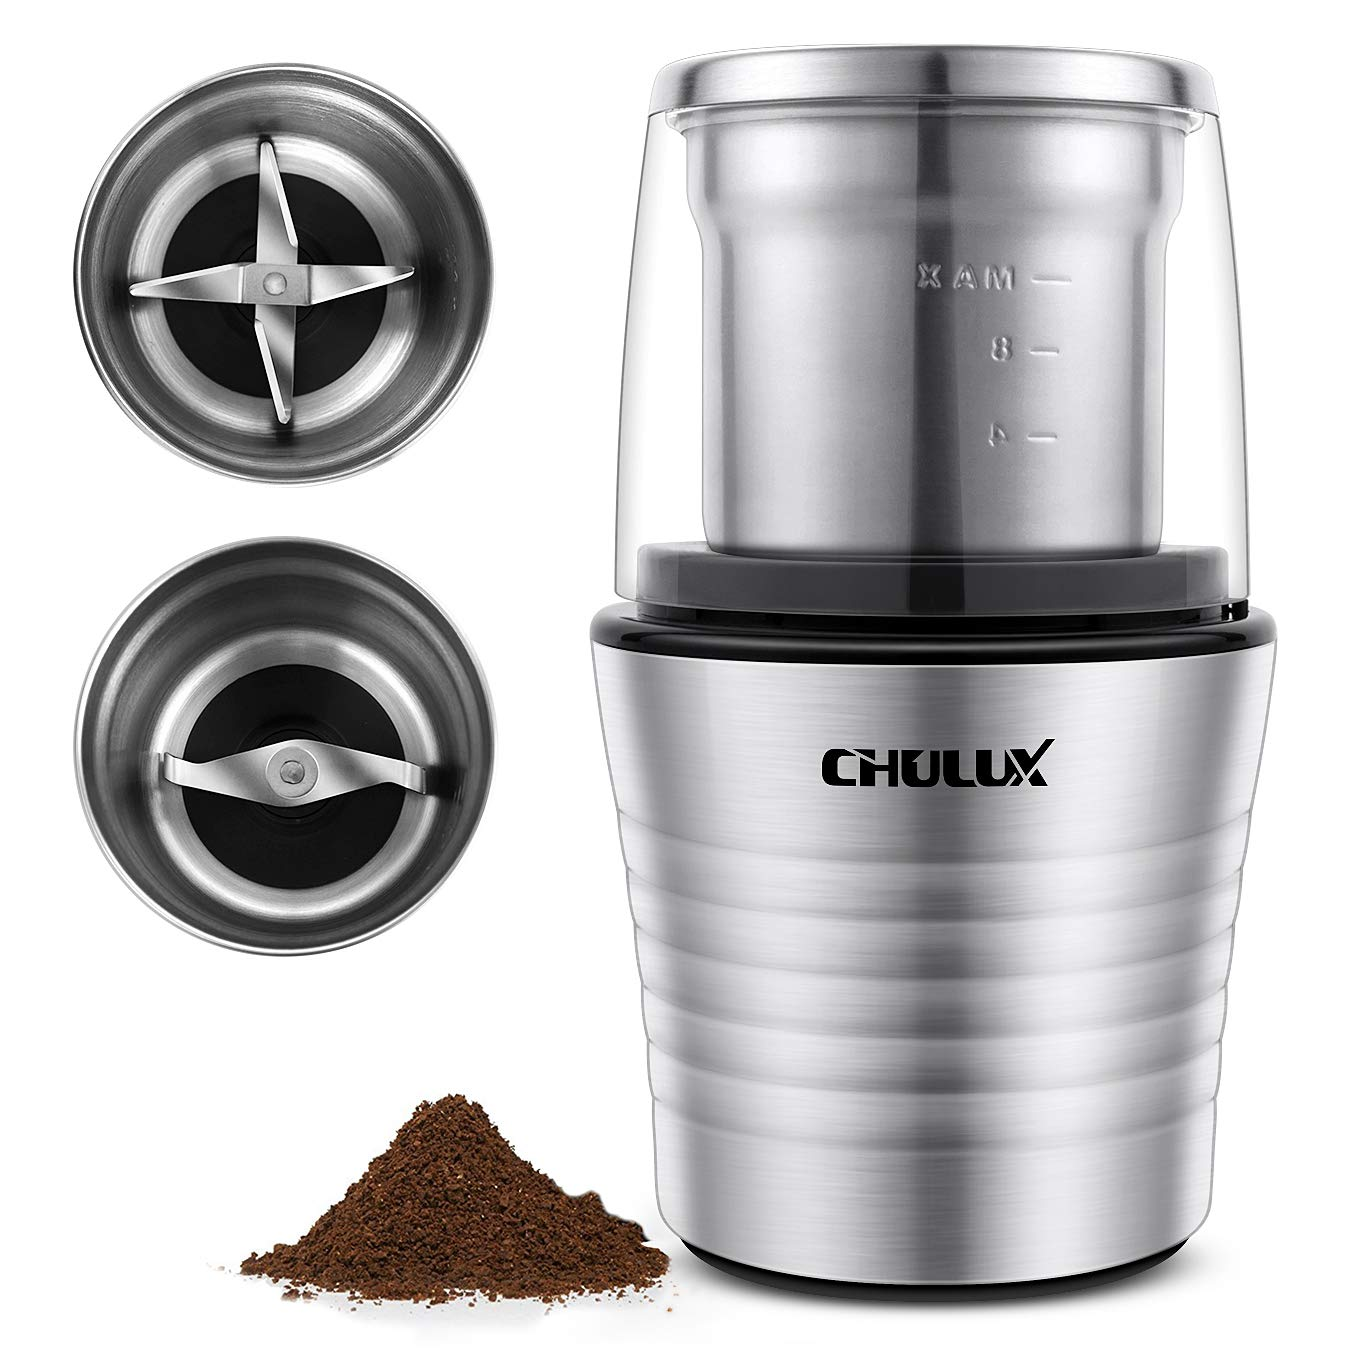 CHULUX Electric Spices and Coffee Grinder with 2.5 Ounce Two Detachable Cups for Wet/Dry Food,Powerful Stainless Steel Blades and Cleaning Brush by CHULUX